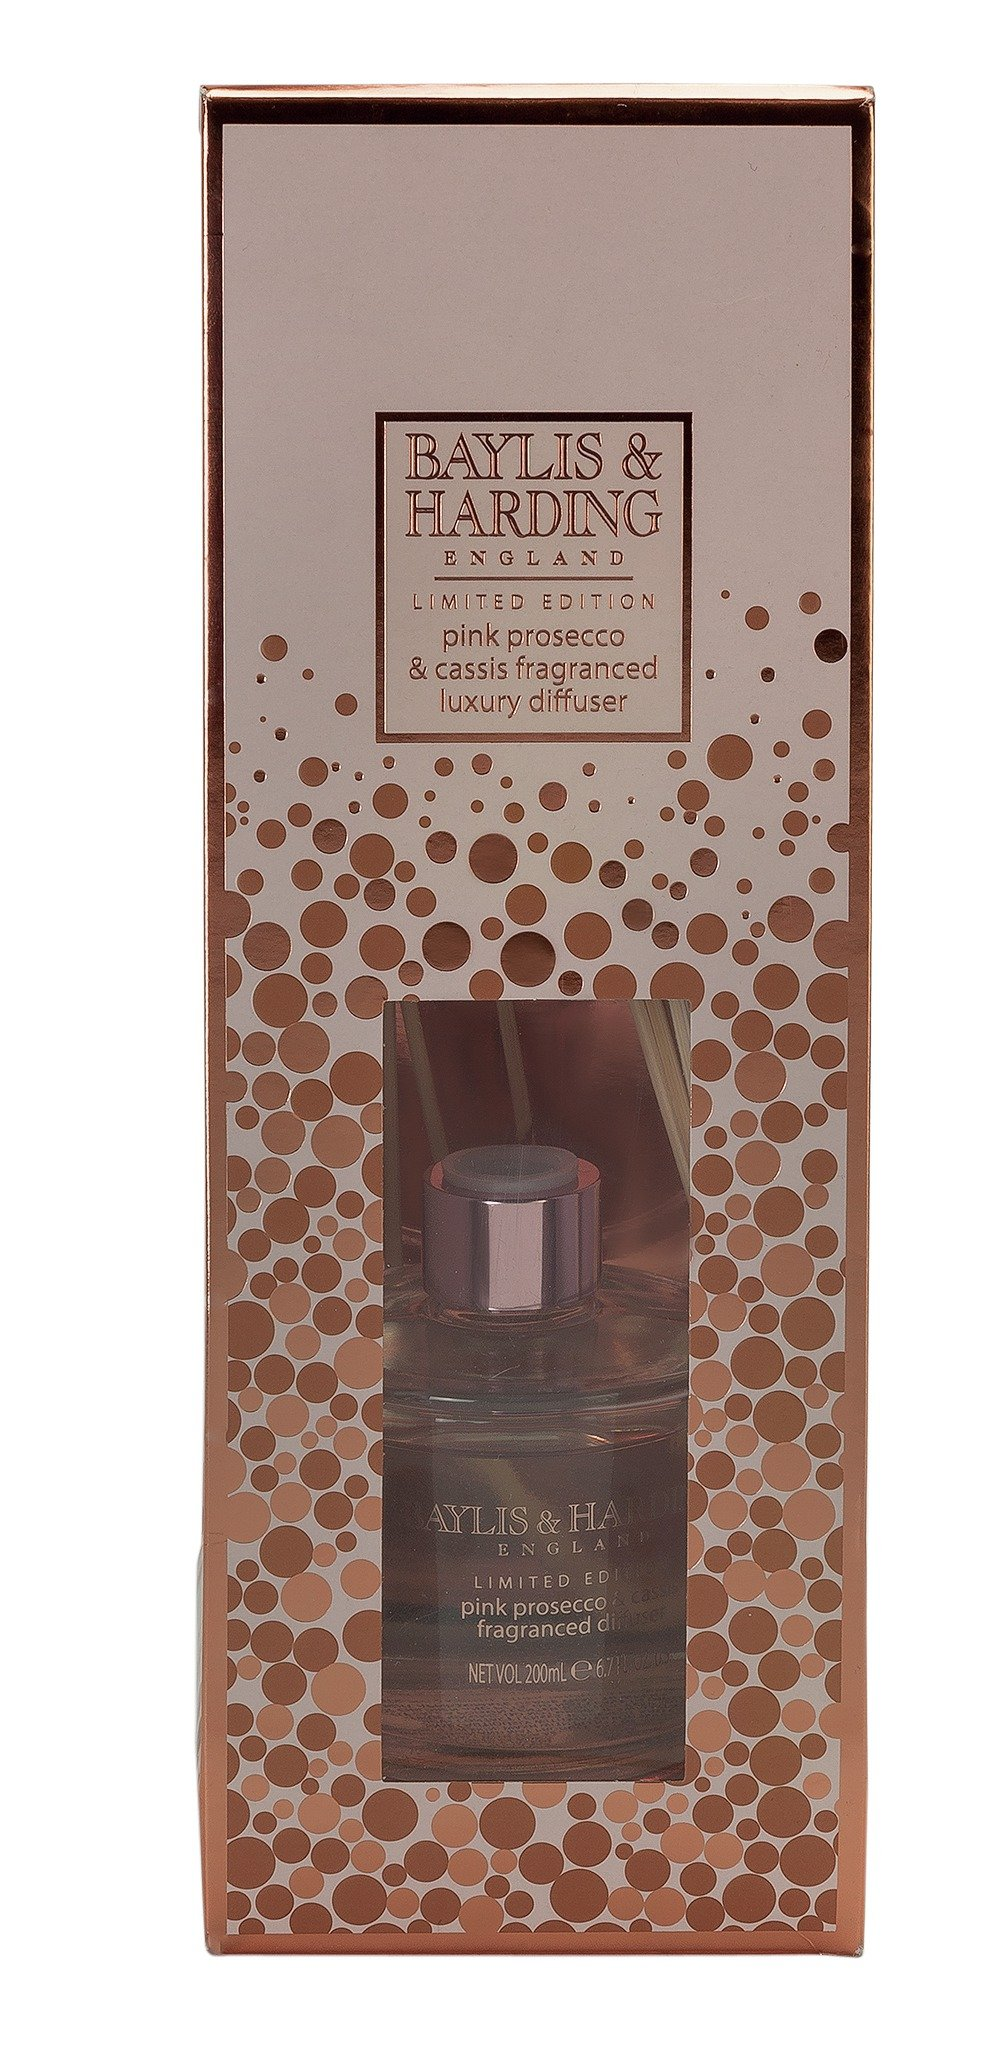 Image of Baylis & Harding - Escape Pink Prosecco reed Diffuser